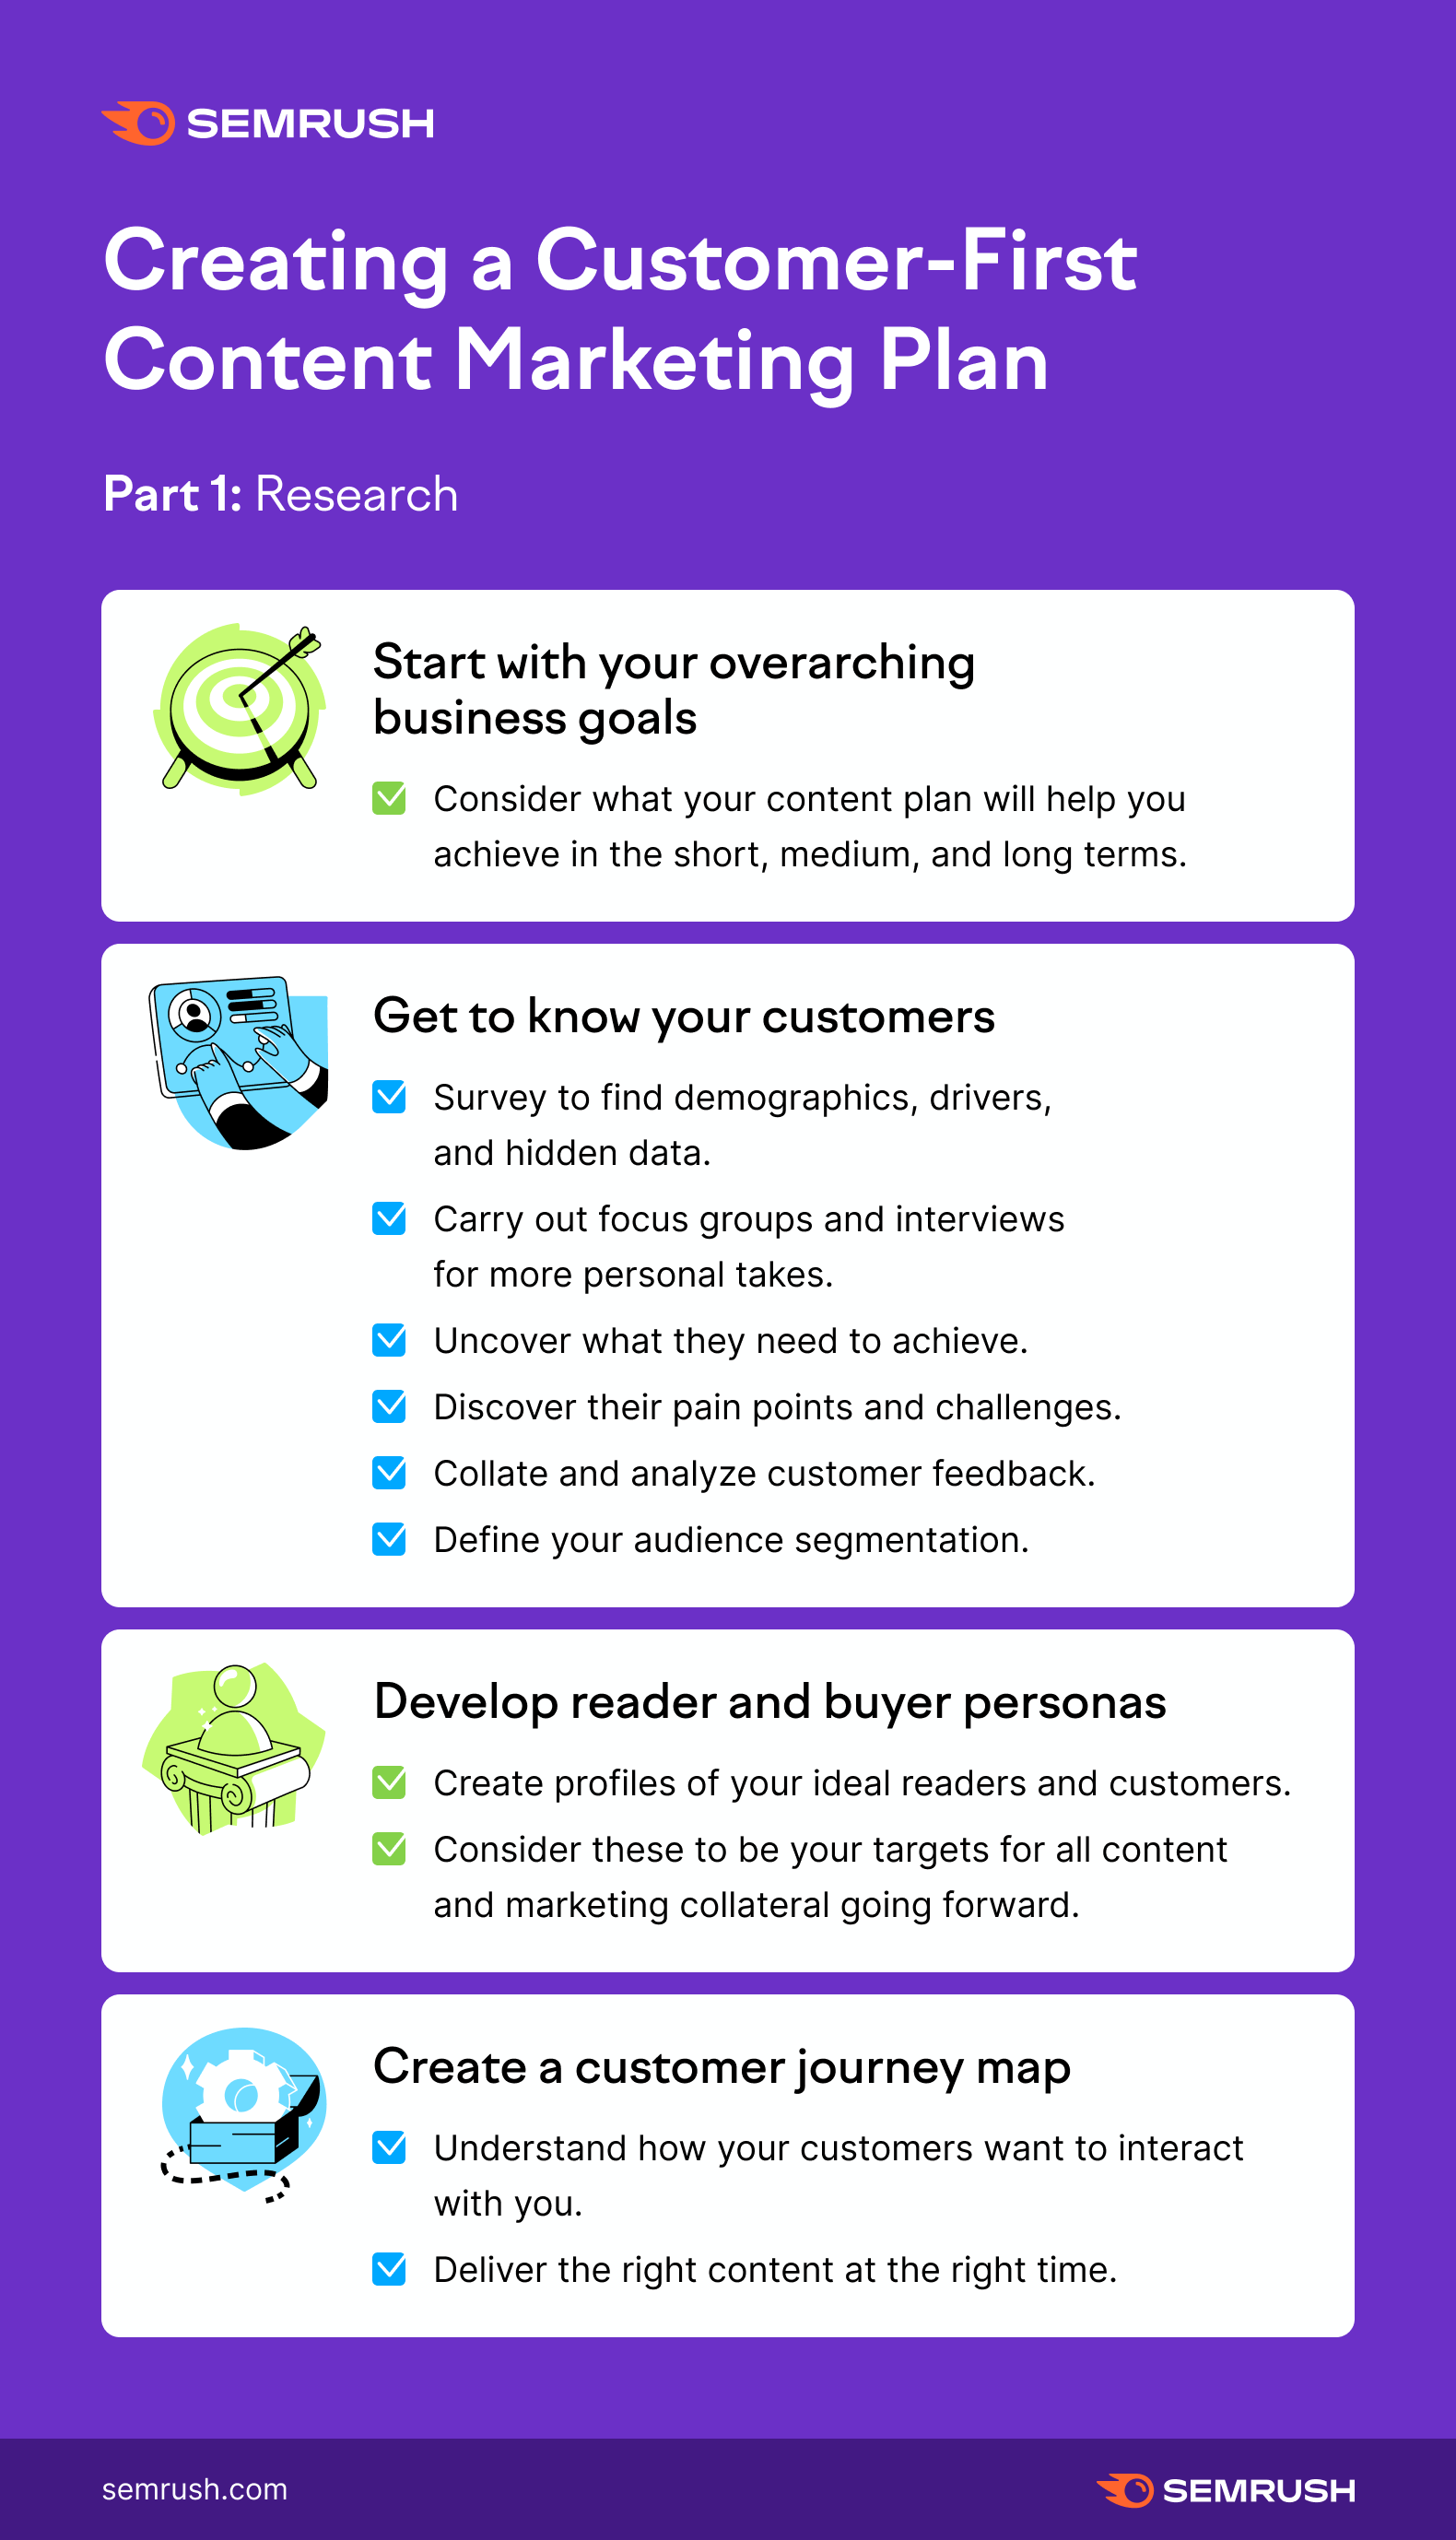 How to Create the Ultimate Customer-First Content Marketing Plan